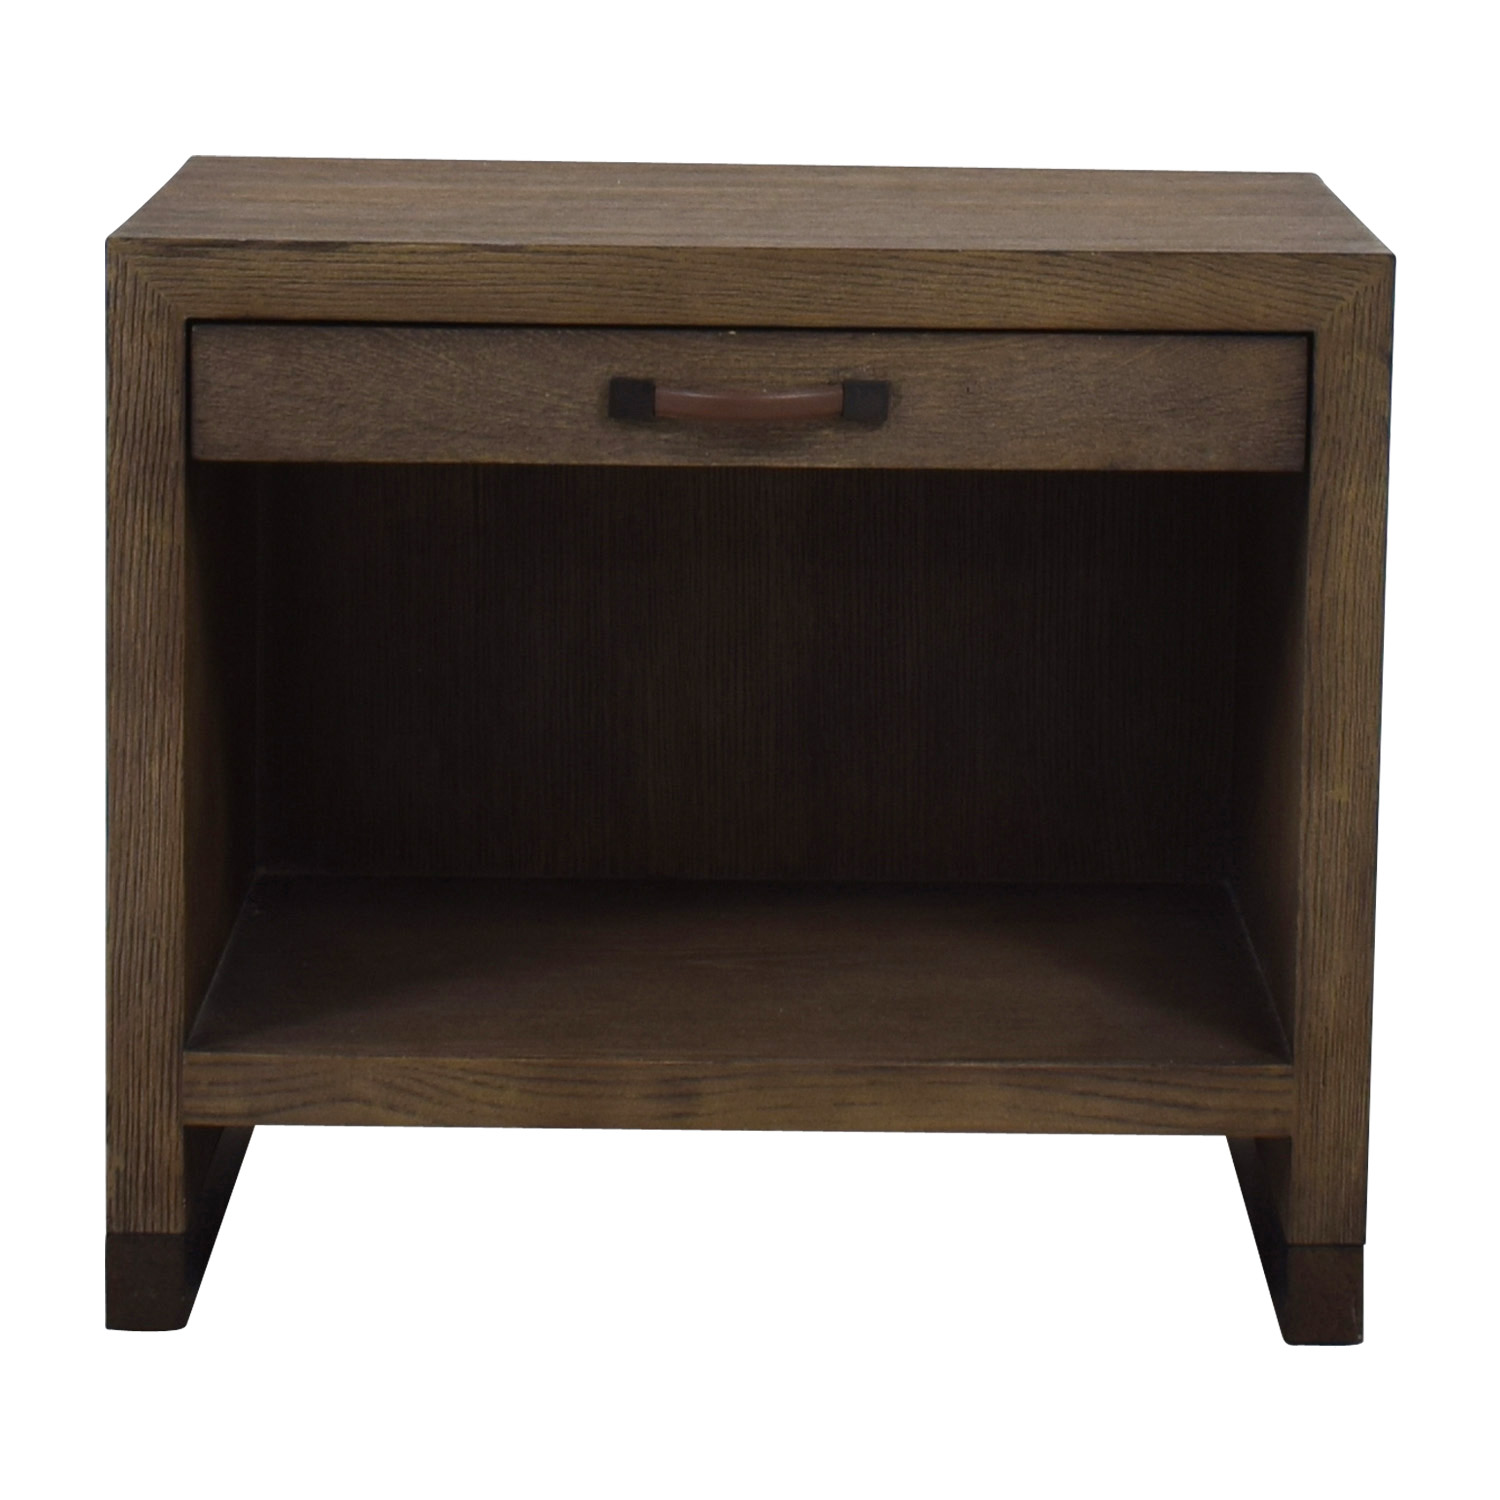 Lillian August Conner Grey Wood Nightstand / Cabinets & Sideboards